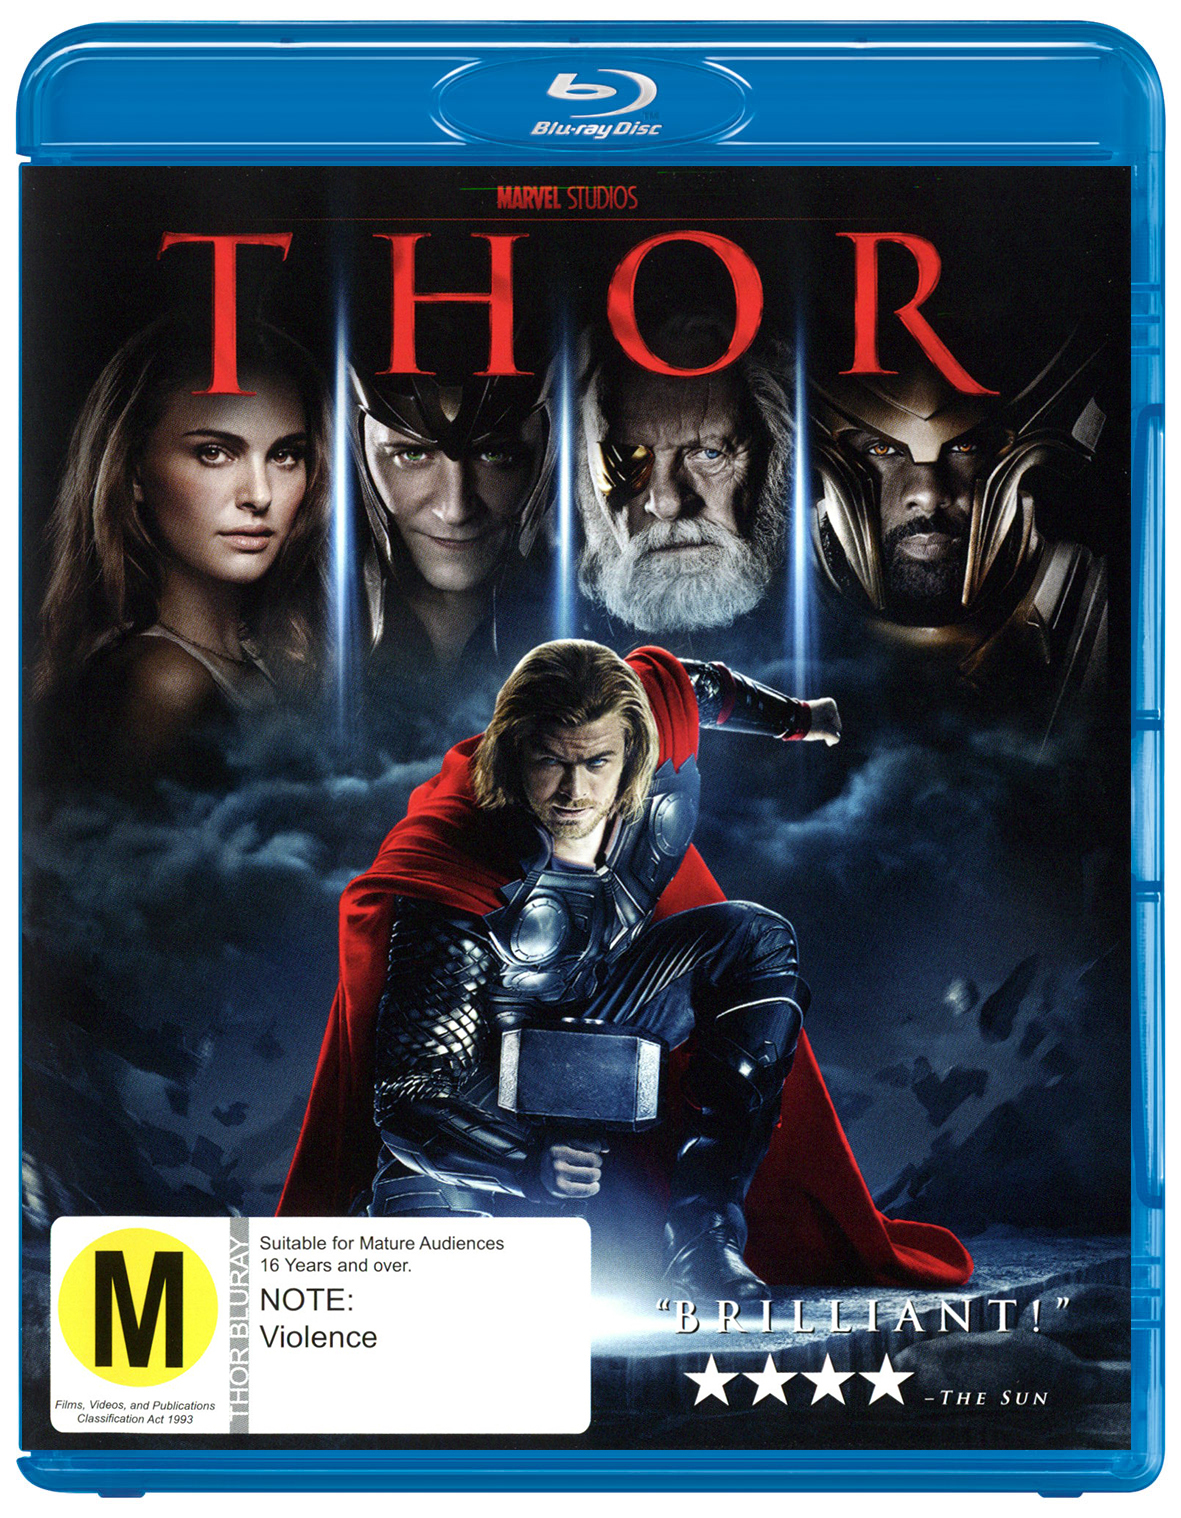 Thor on Blu-ray image